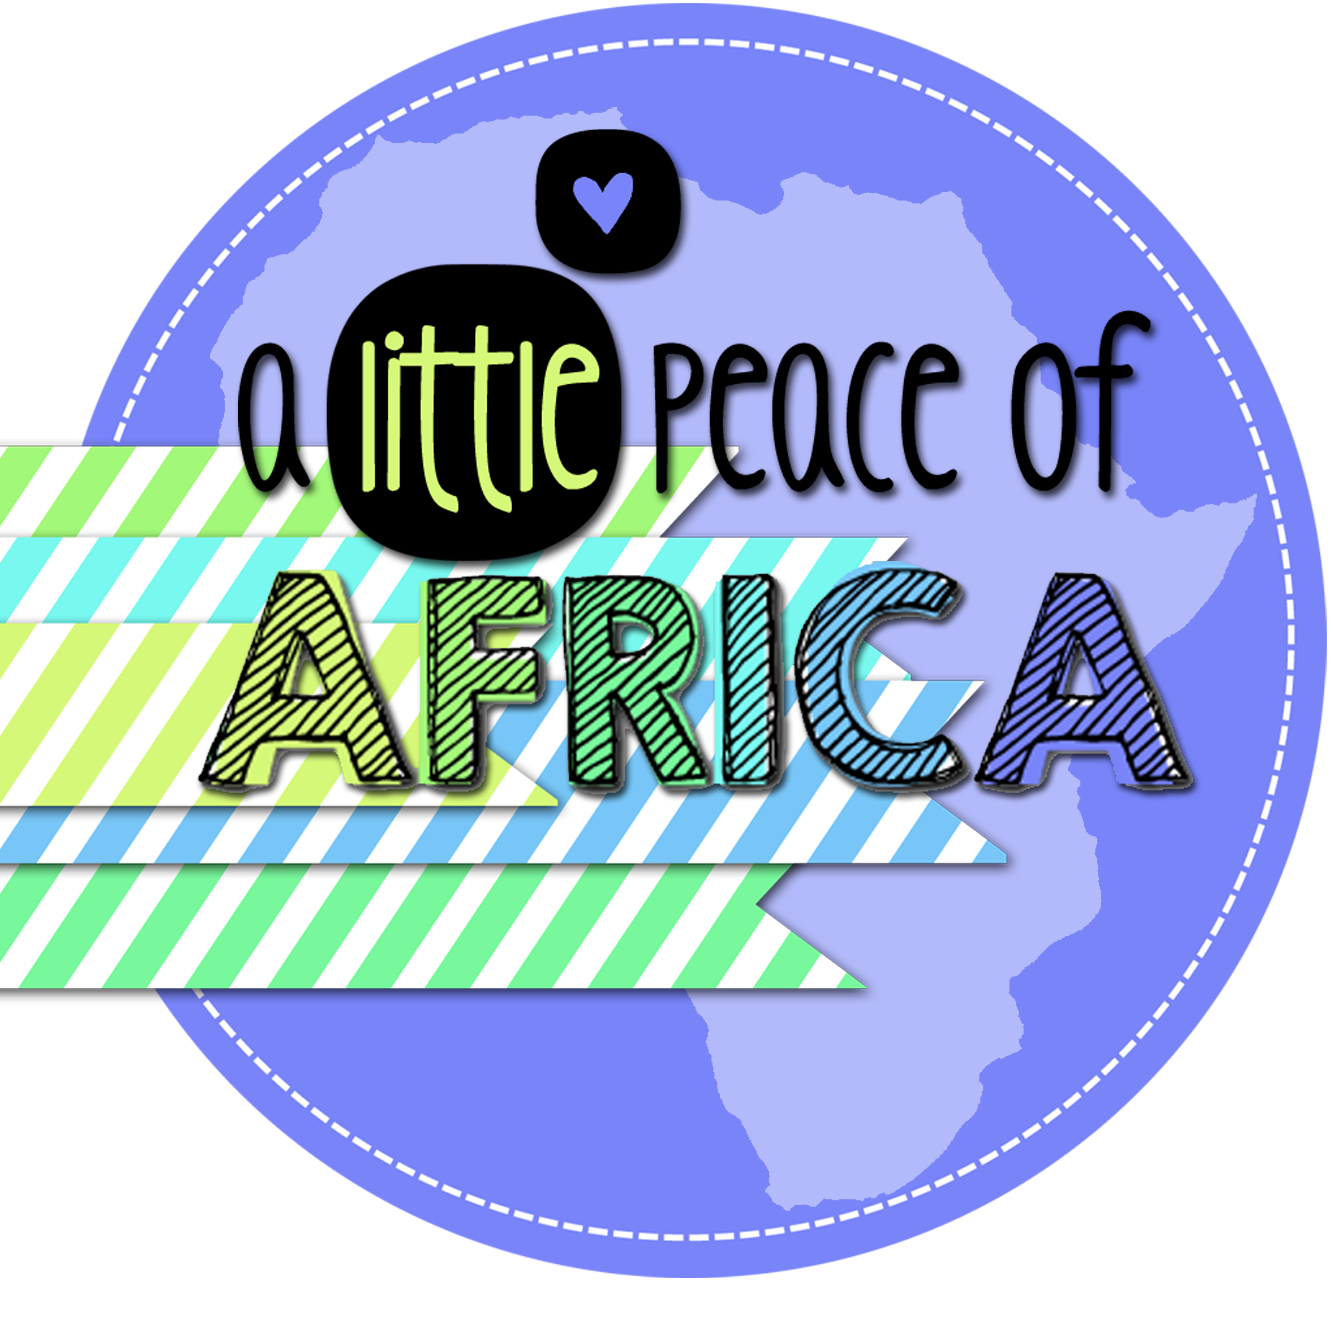 A LITTLE PEACE OF AFRICA